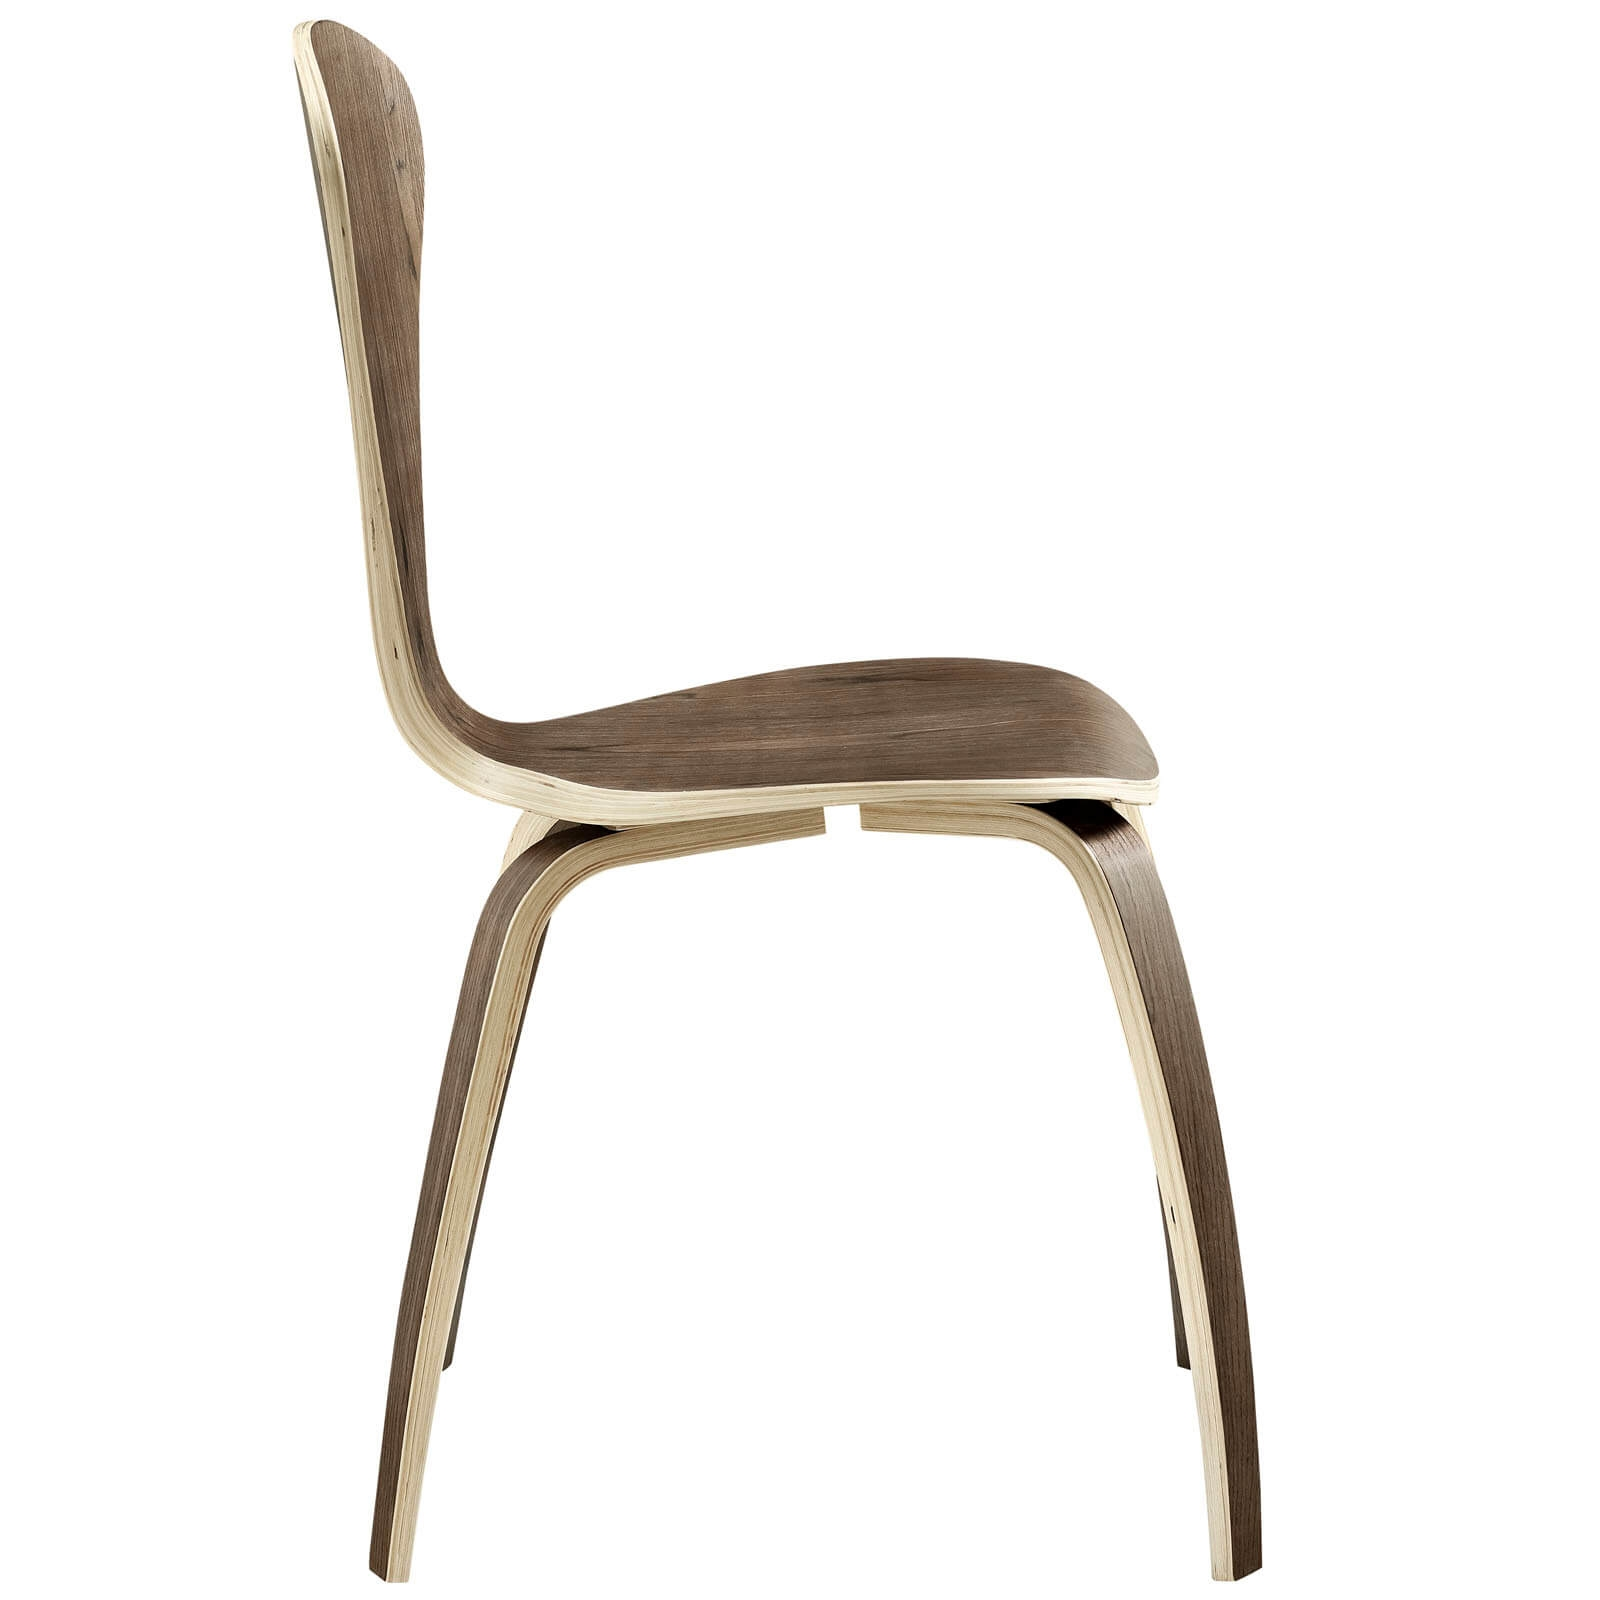 Modern chair side view